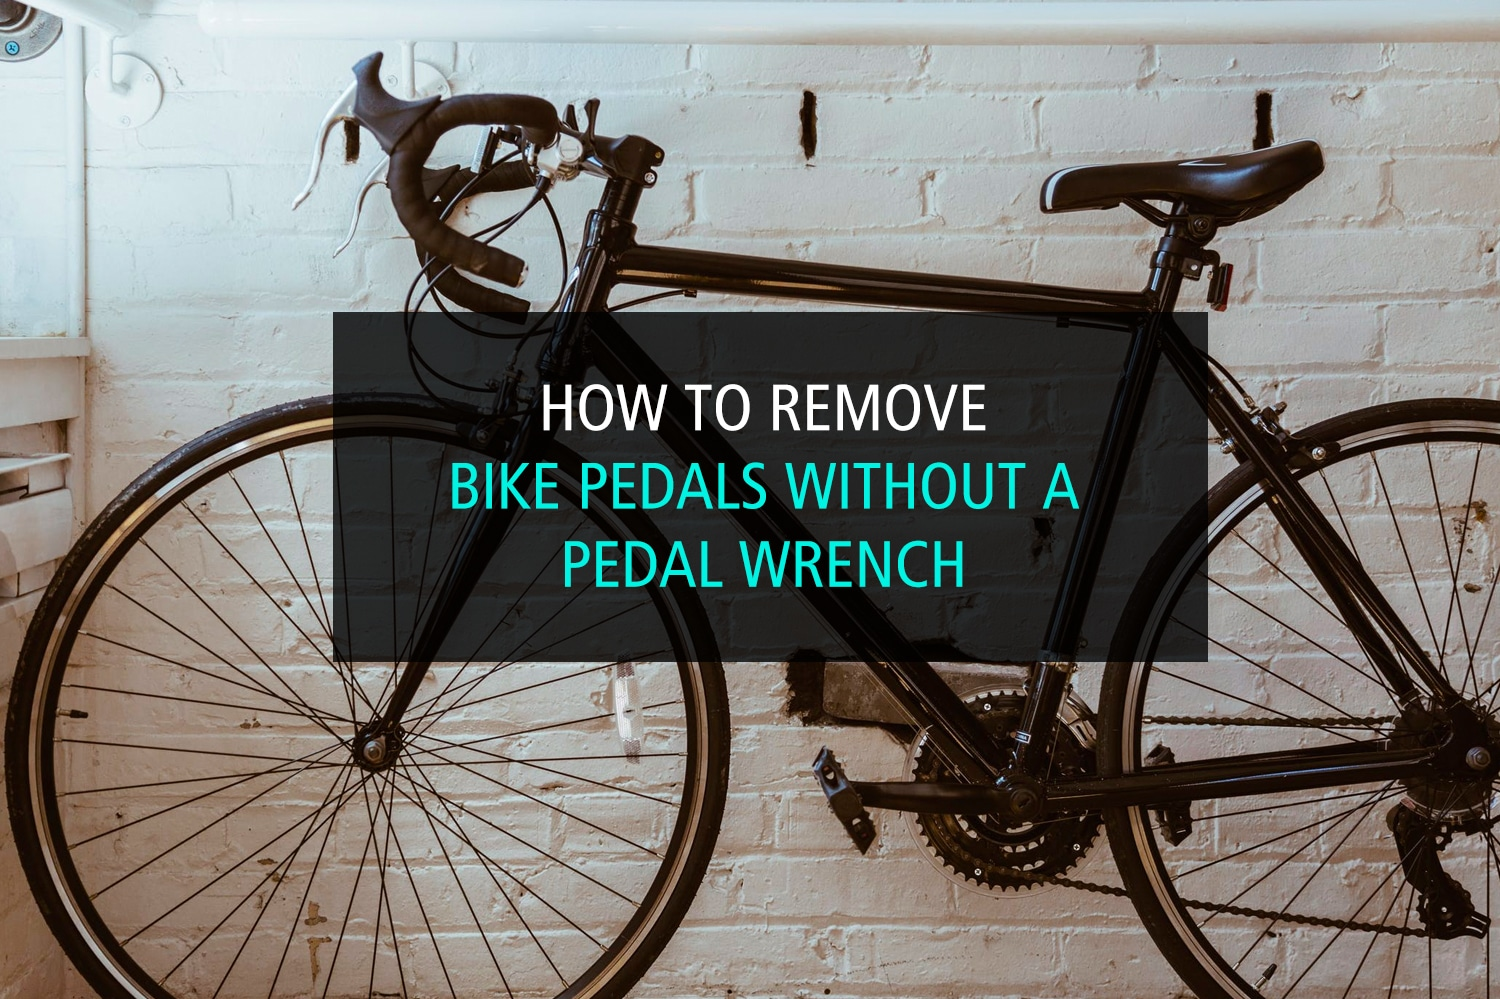 How to remove bike pedals without a pedal wrench